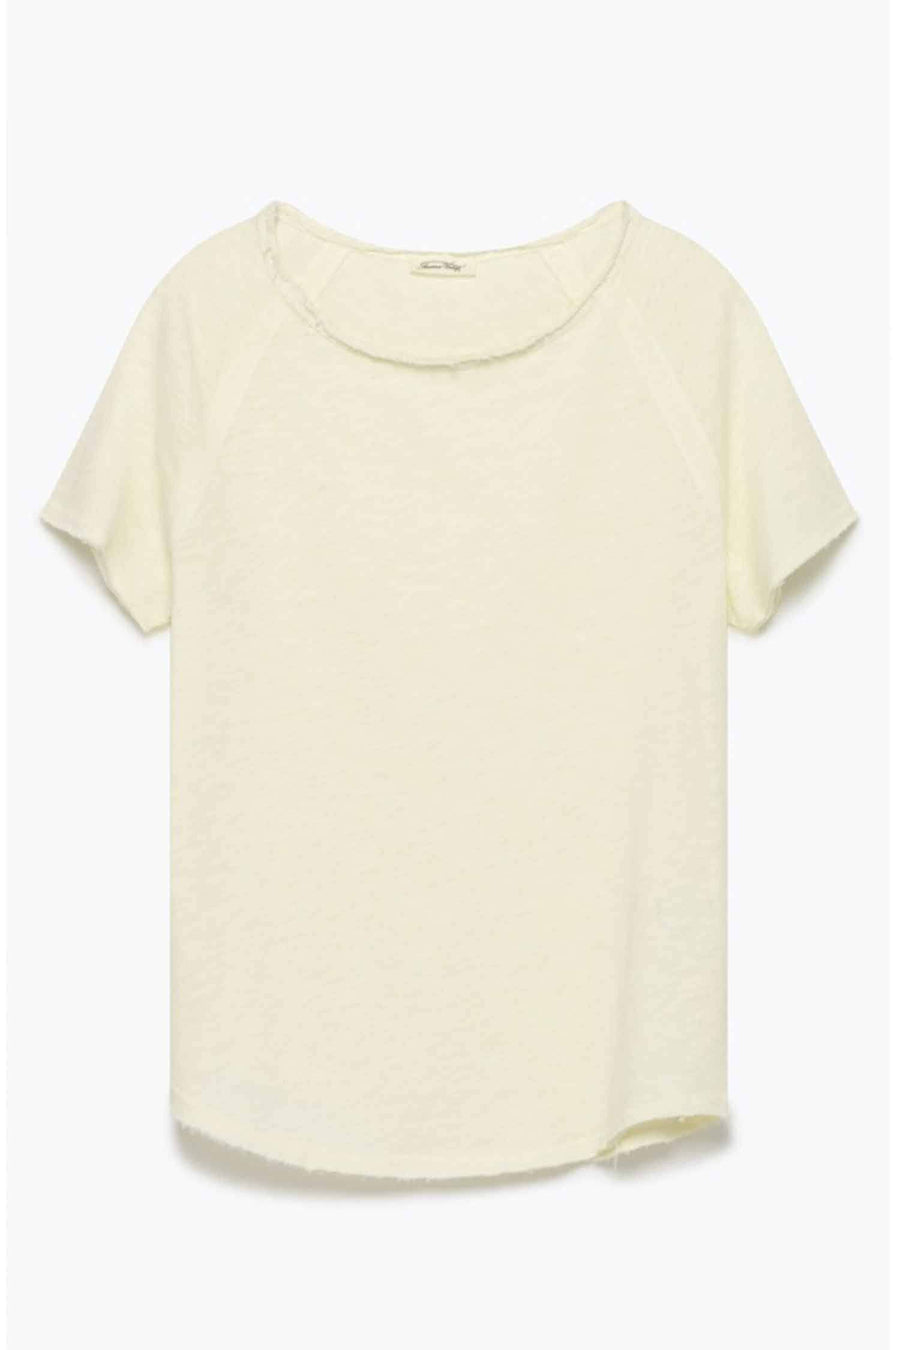 Shop Online Sonoma S/S Sweatshirt in Vintage Ivory by American Vintage  Frockaholics Tops